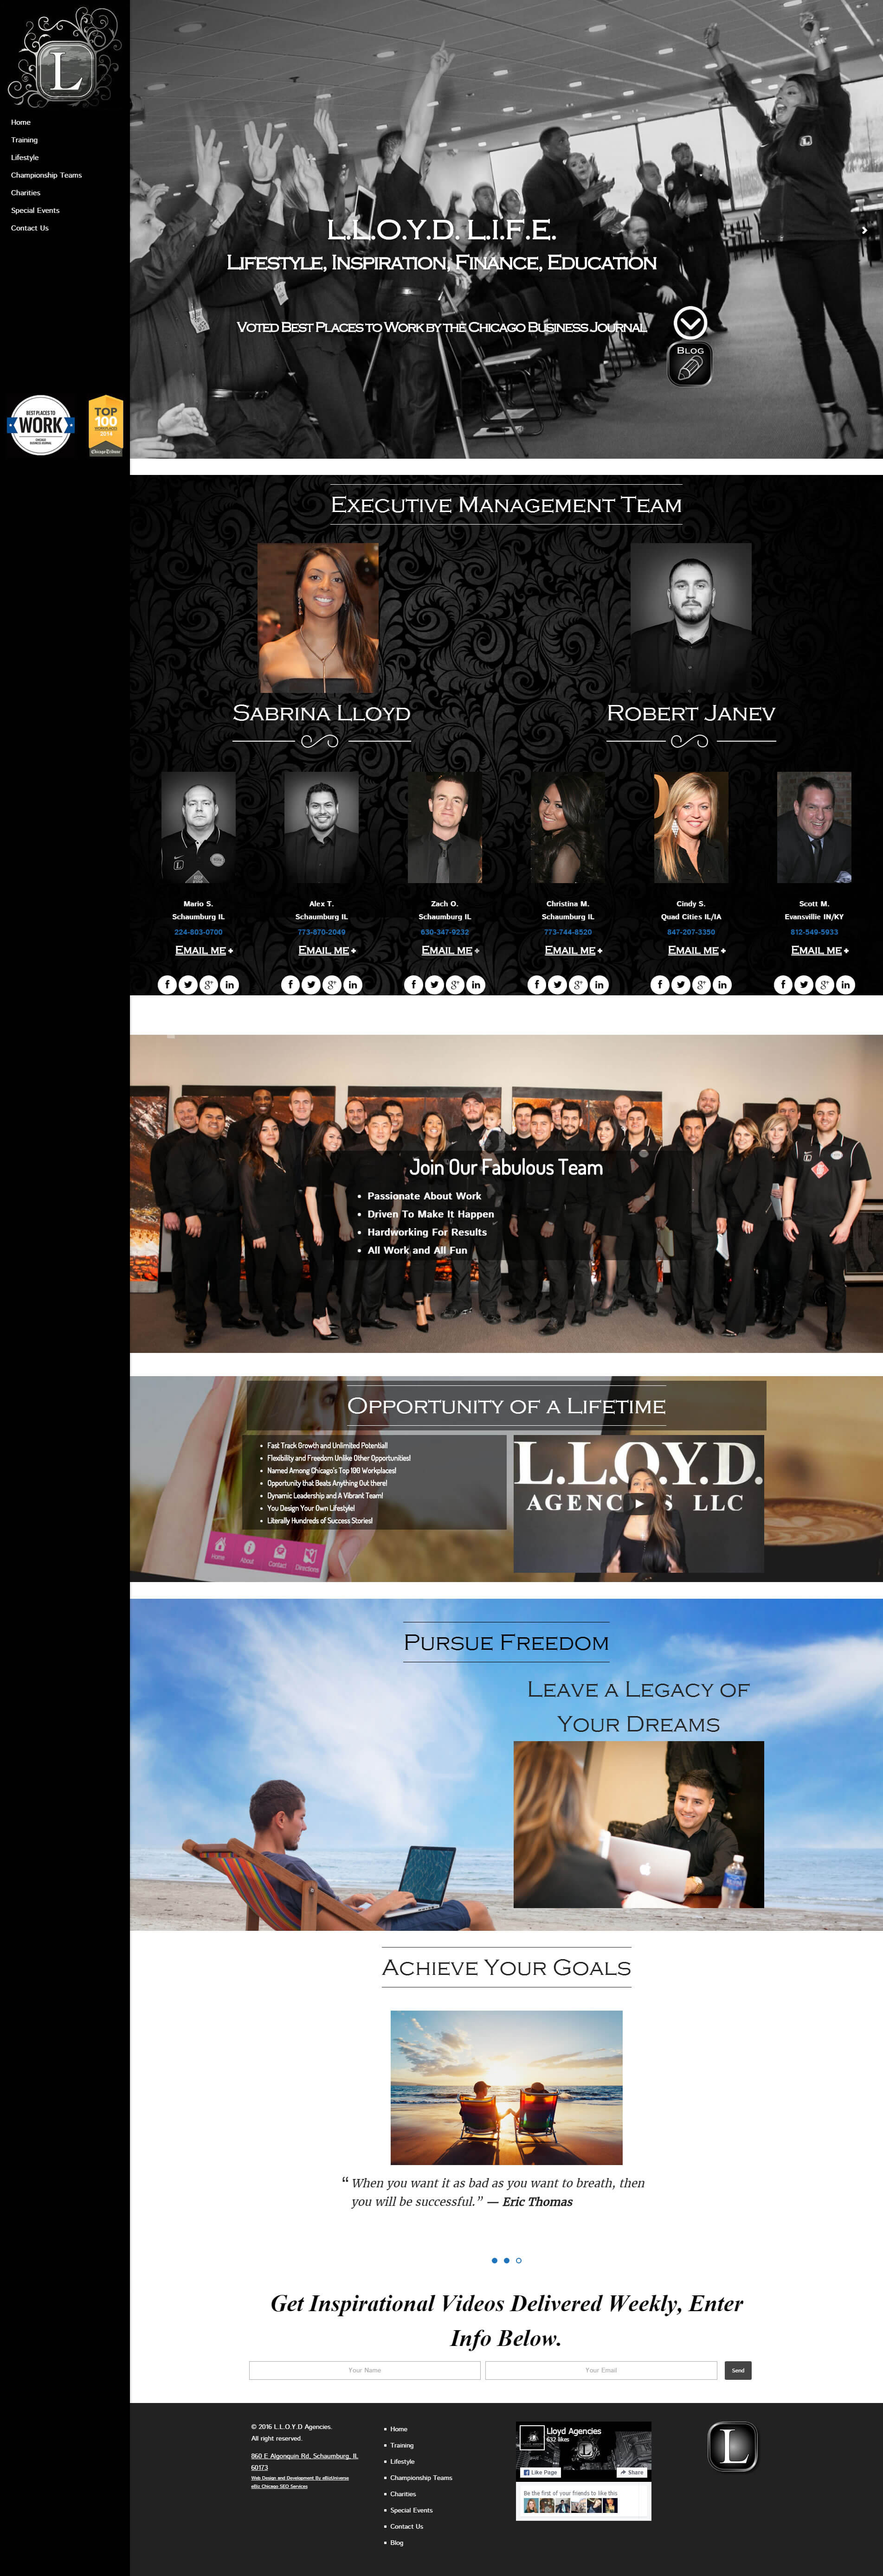 Lloyd Agencies